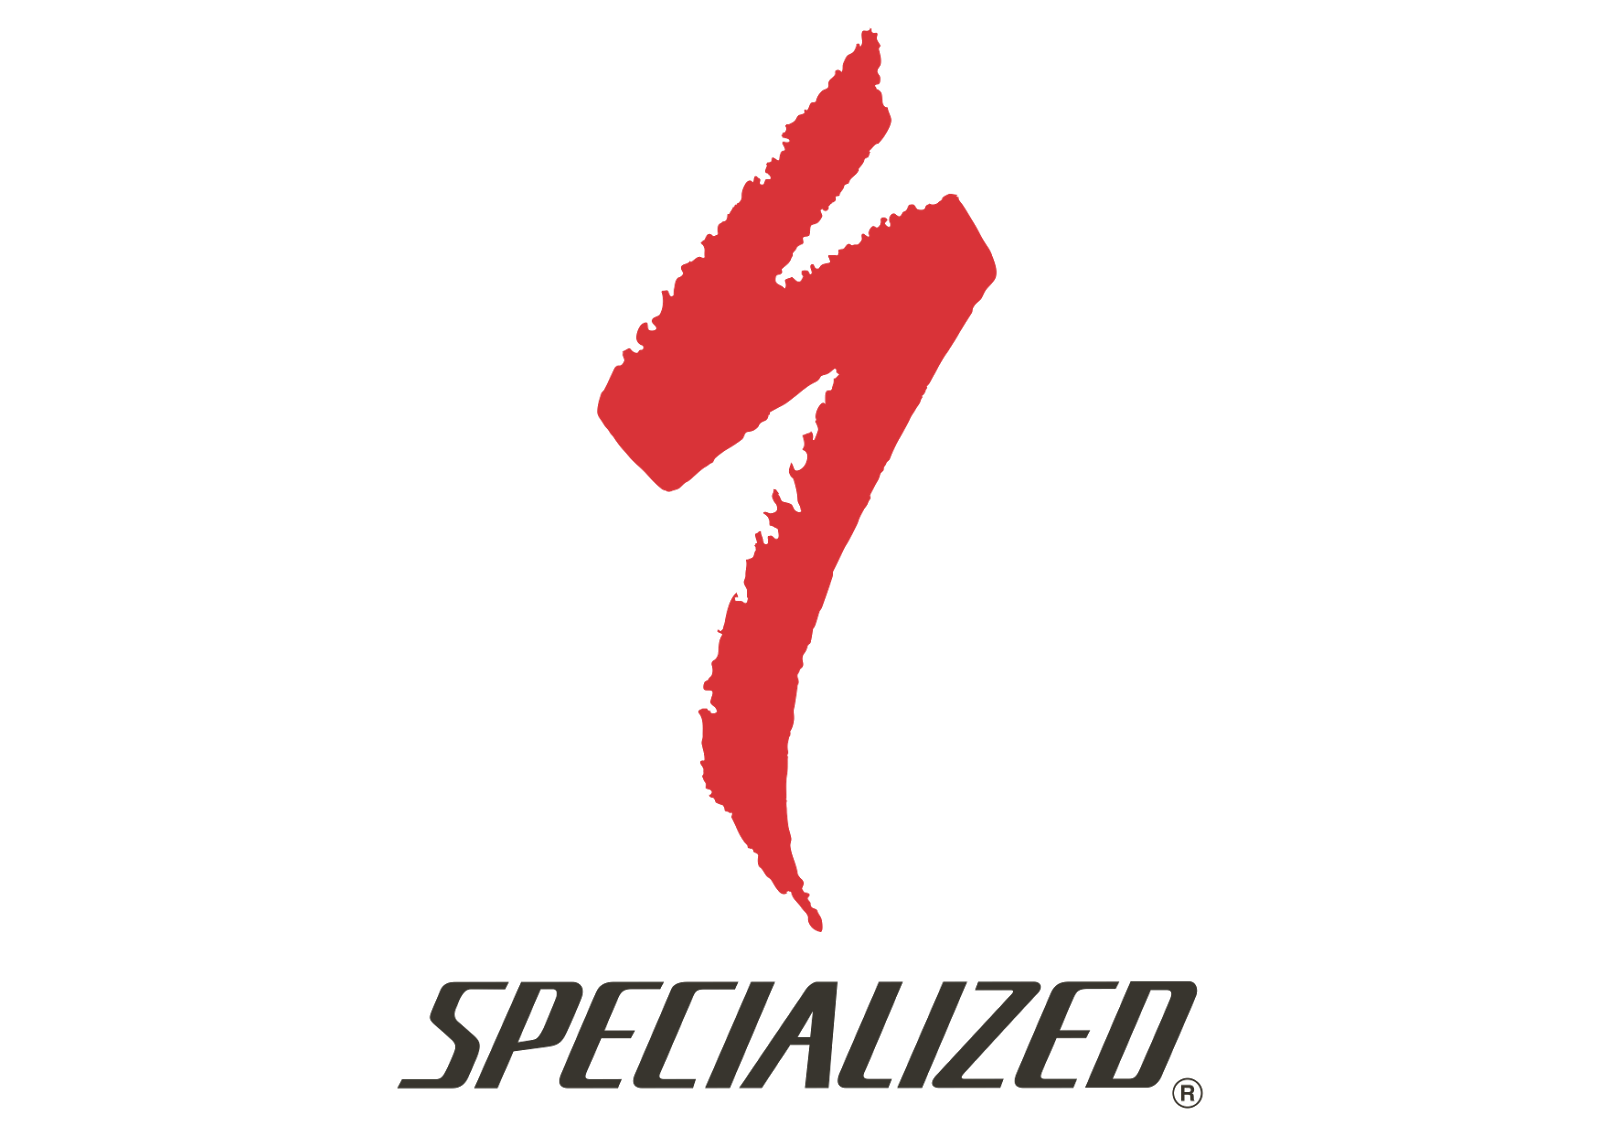 Specialized Logo Vecto...